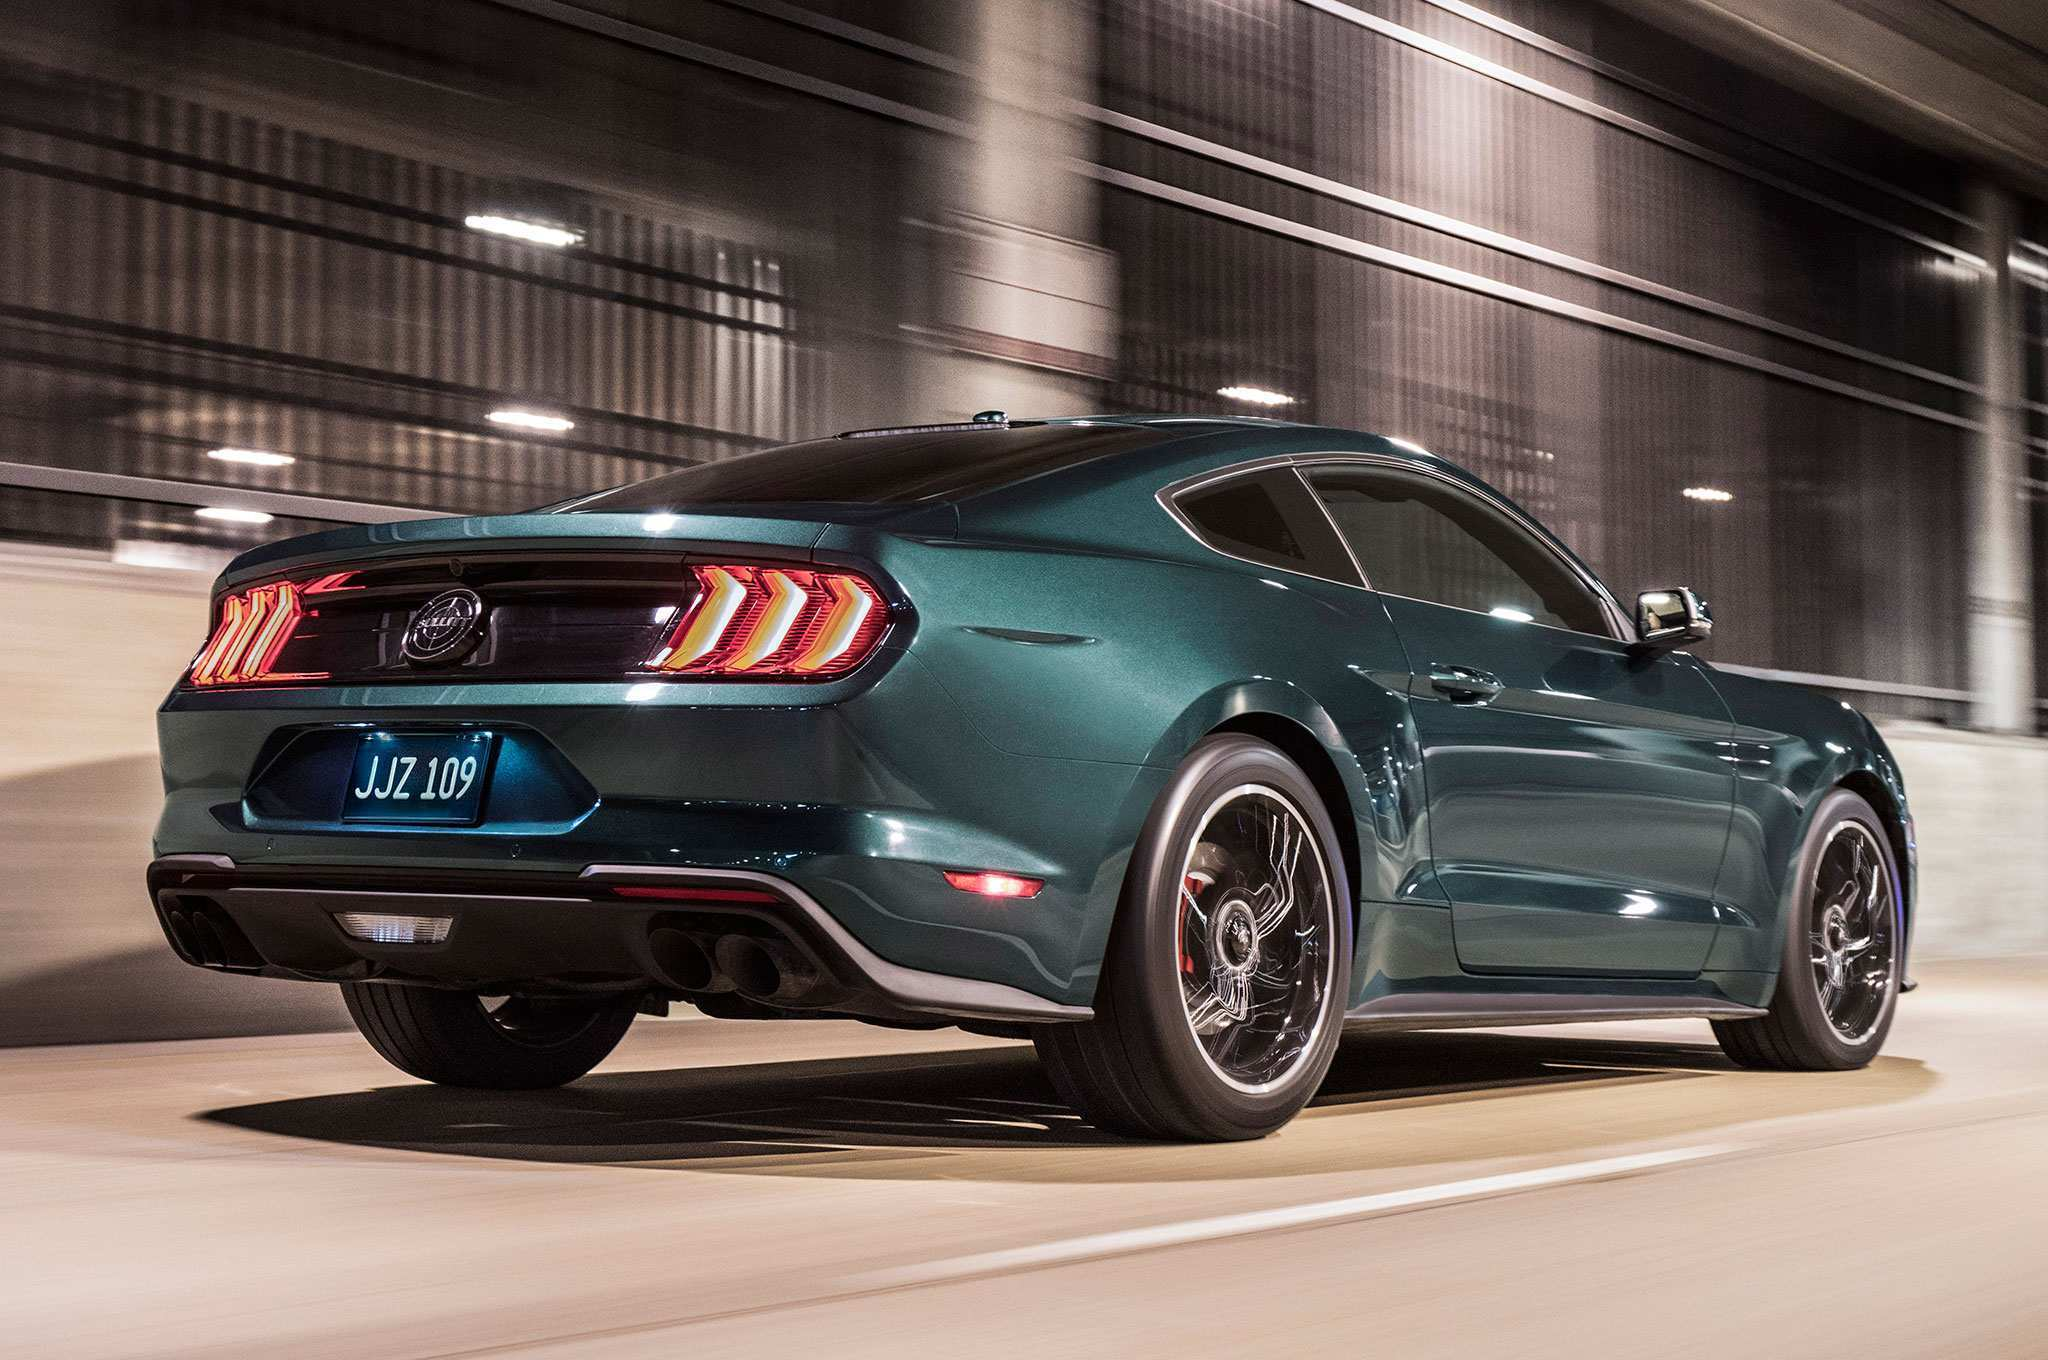 94 Gallery of The Ford Bullitt 2019 For Sale First Drive Price Performance And Review Redesign and Concept by The Ford Bullitt 2019 For Sale First Drive Price Performance And Review